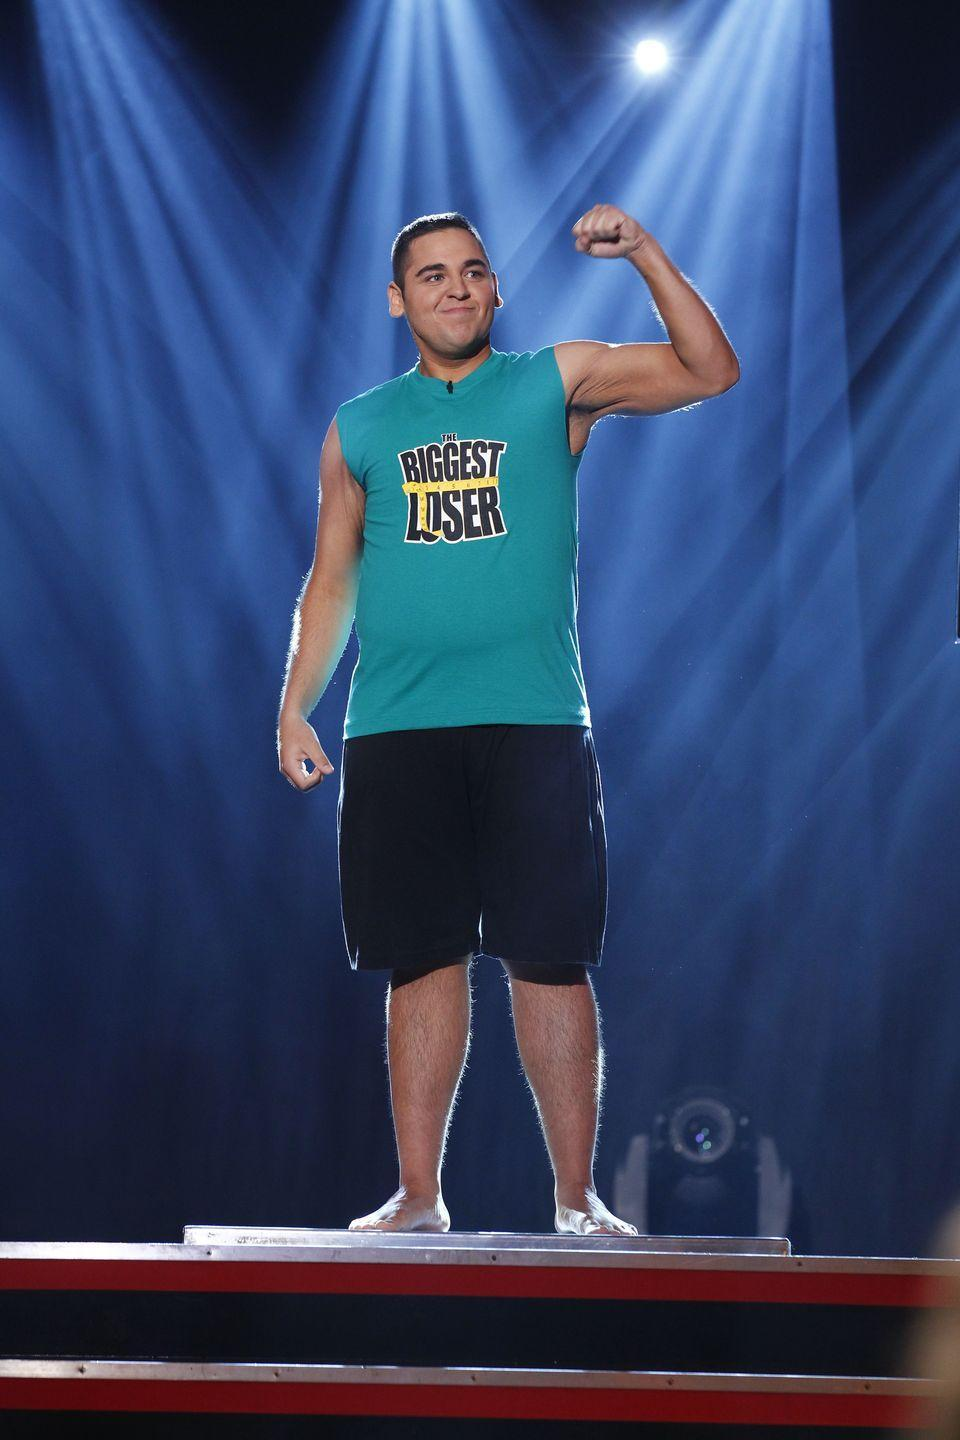 <p>Jeremy was not messing around in season 13. He lost 199 pounds to nab the title of <em>The Biggest Loser</em>. At 23, he was the youngest contestant to ever win the show.</p>